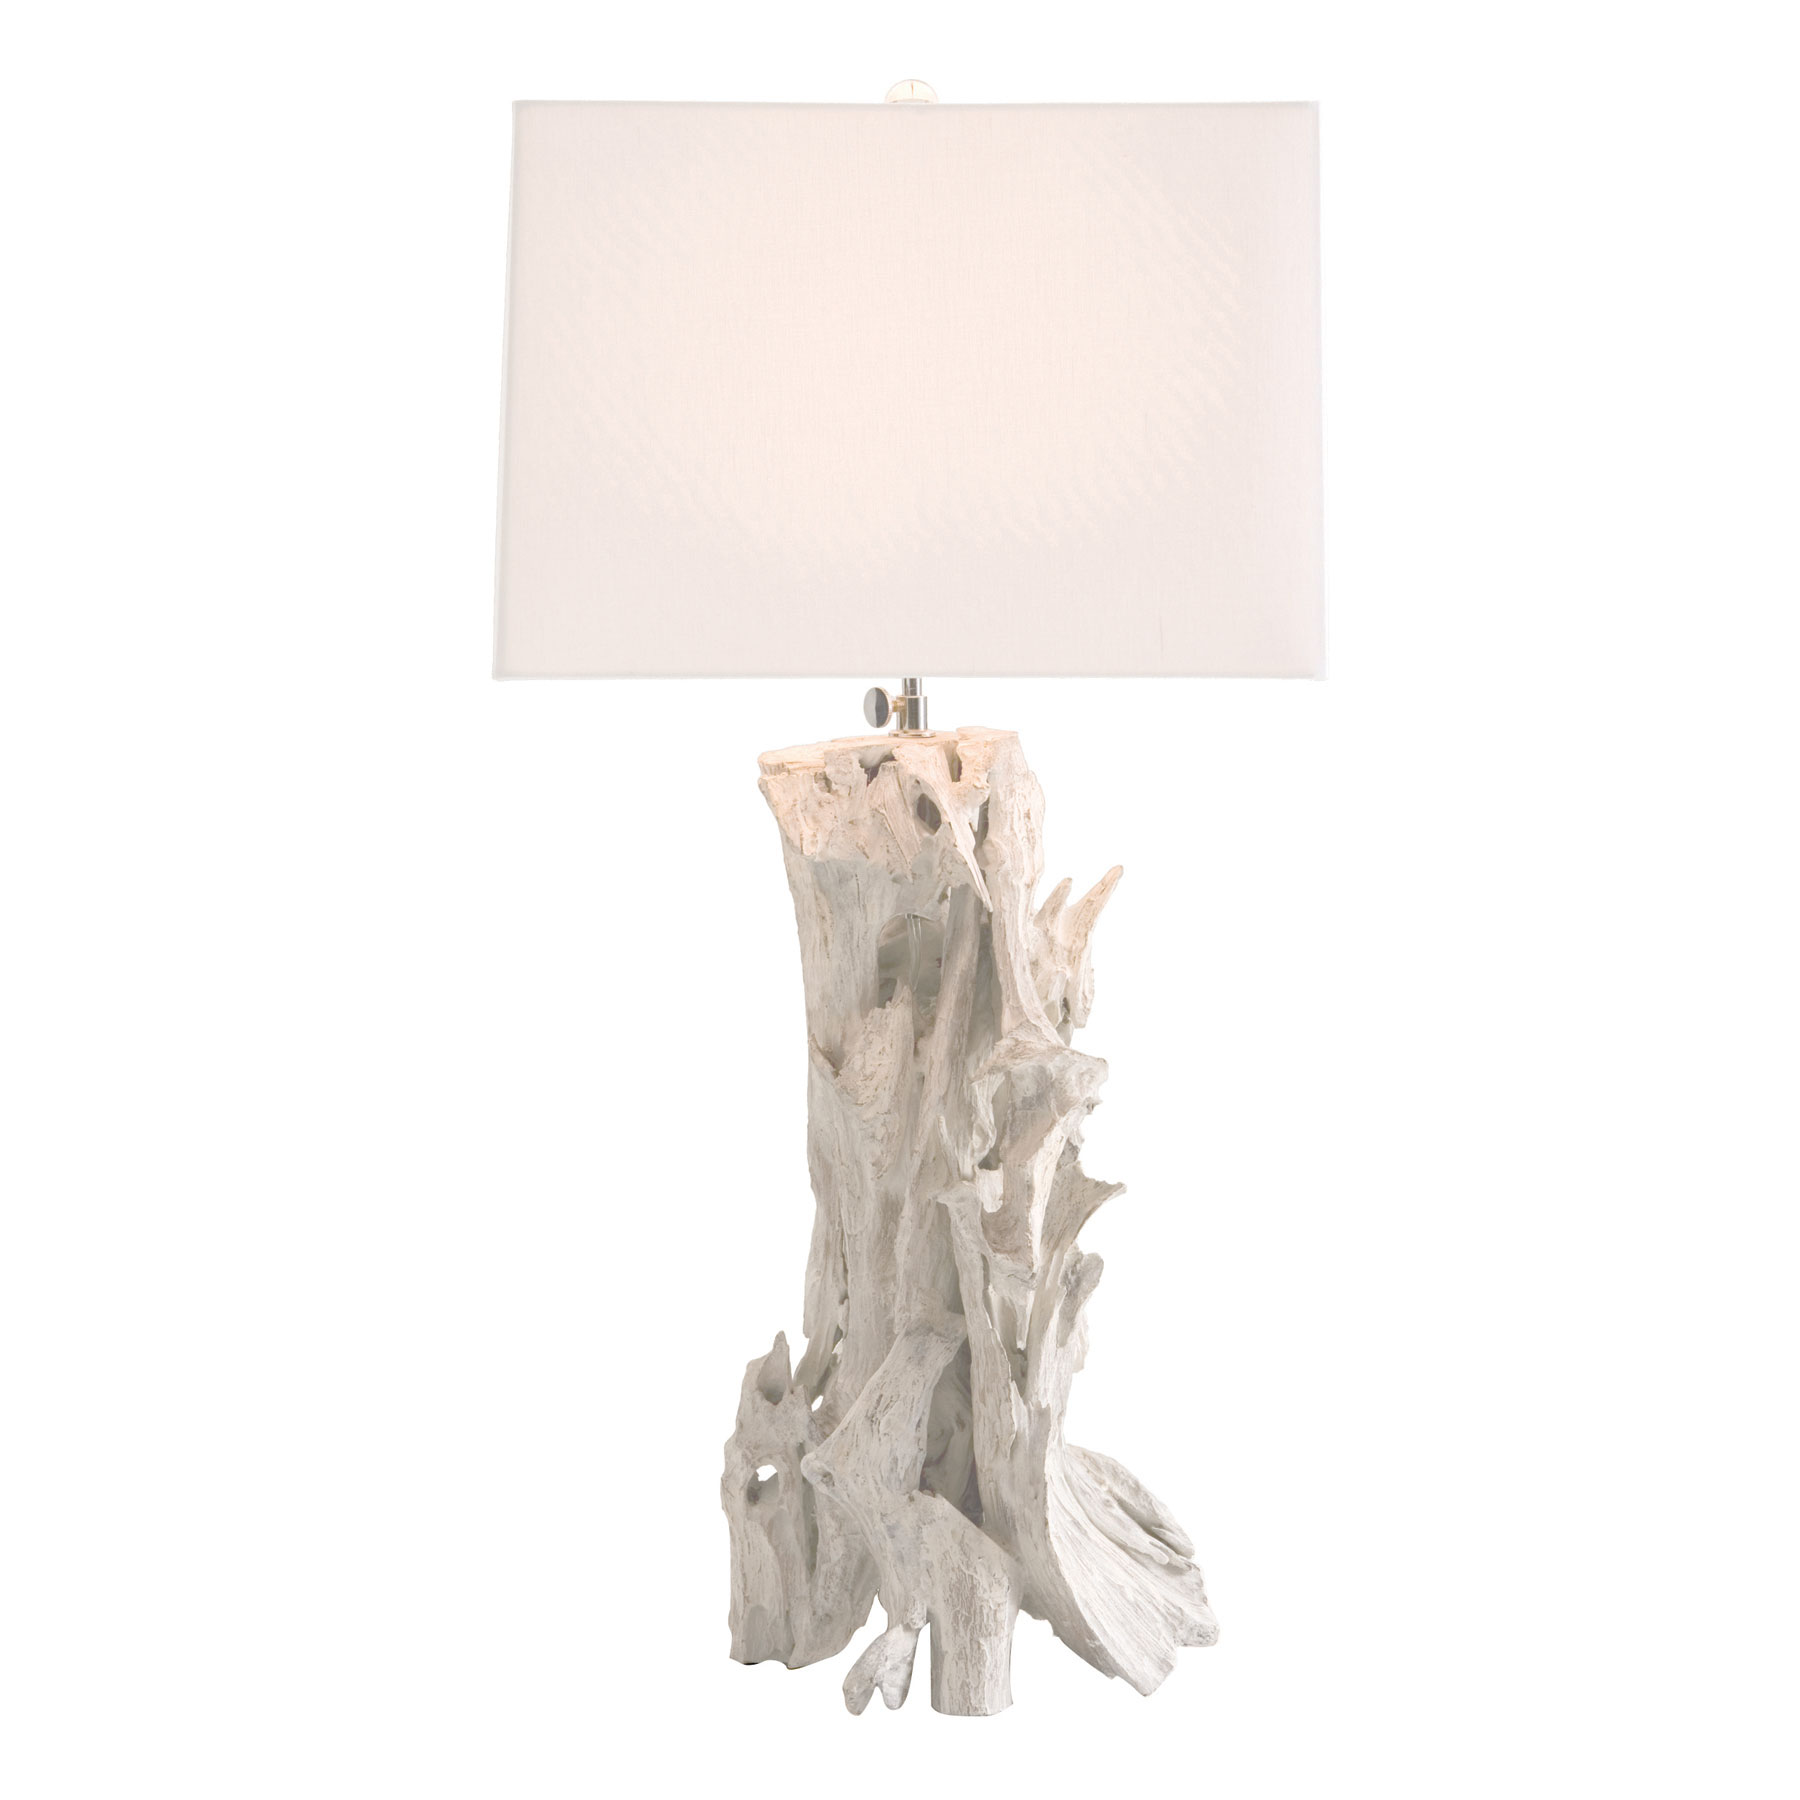 Bodega driftwood table lamp by arteriors home ah 15408 394 mozeypictures Gallery